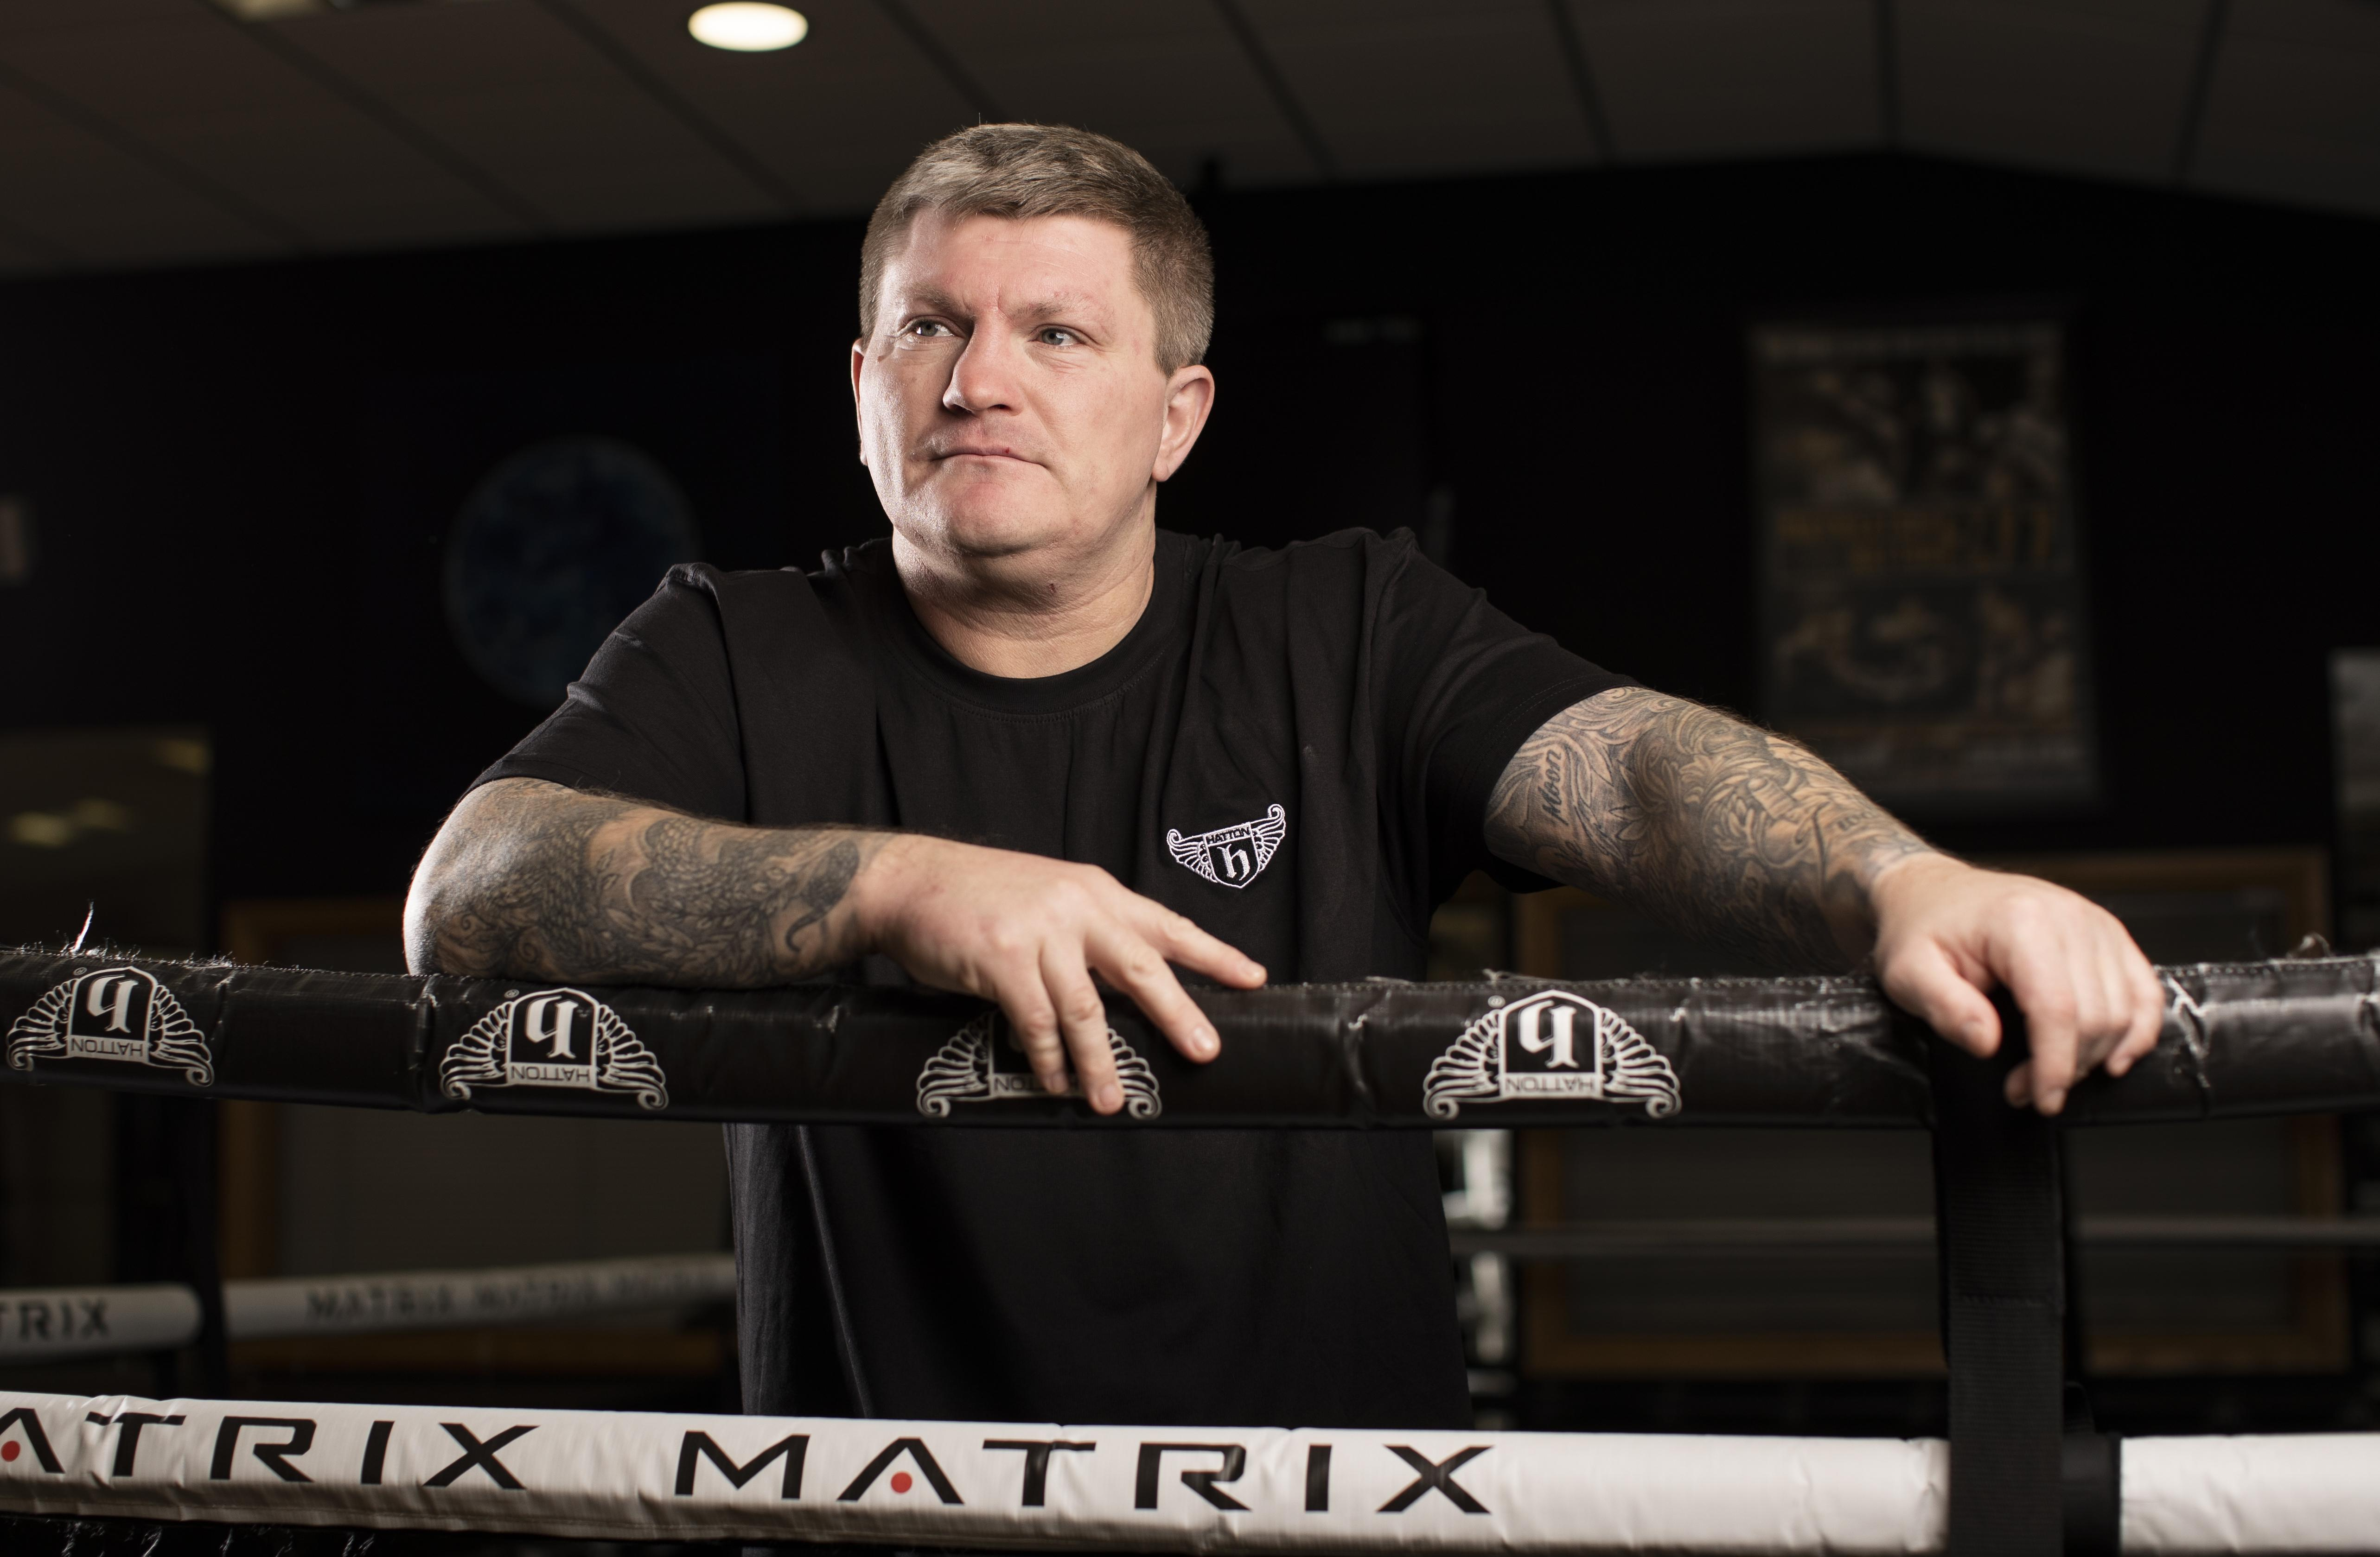 Hatton feels like the depression is at bay - but knows he'll never be rid of it